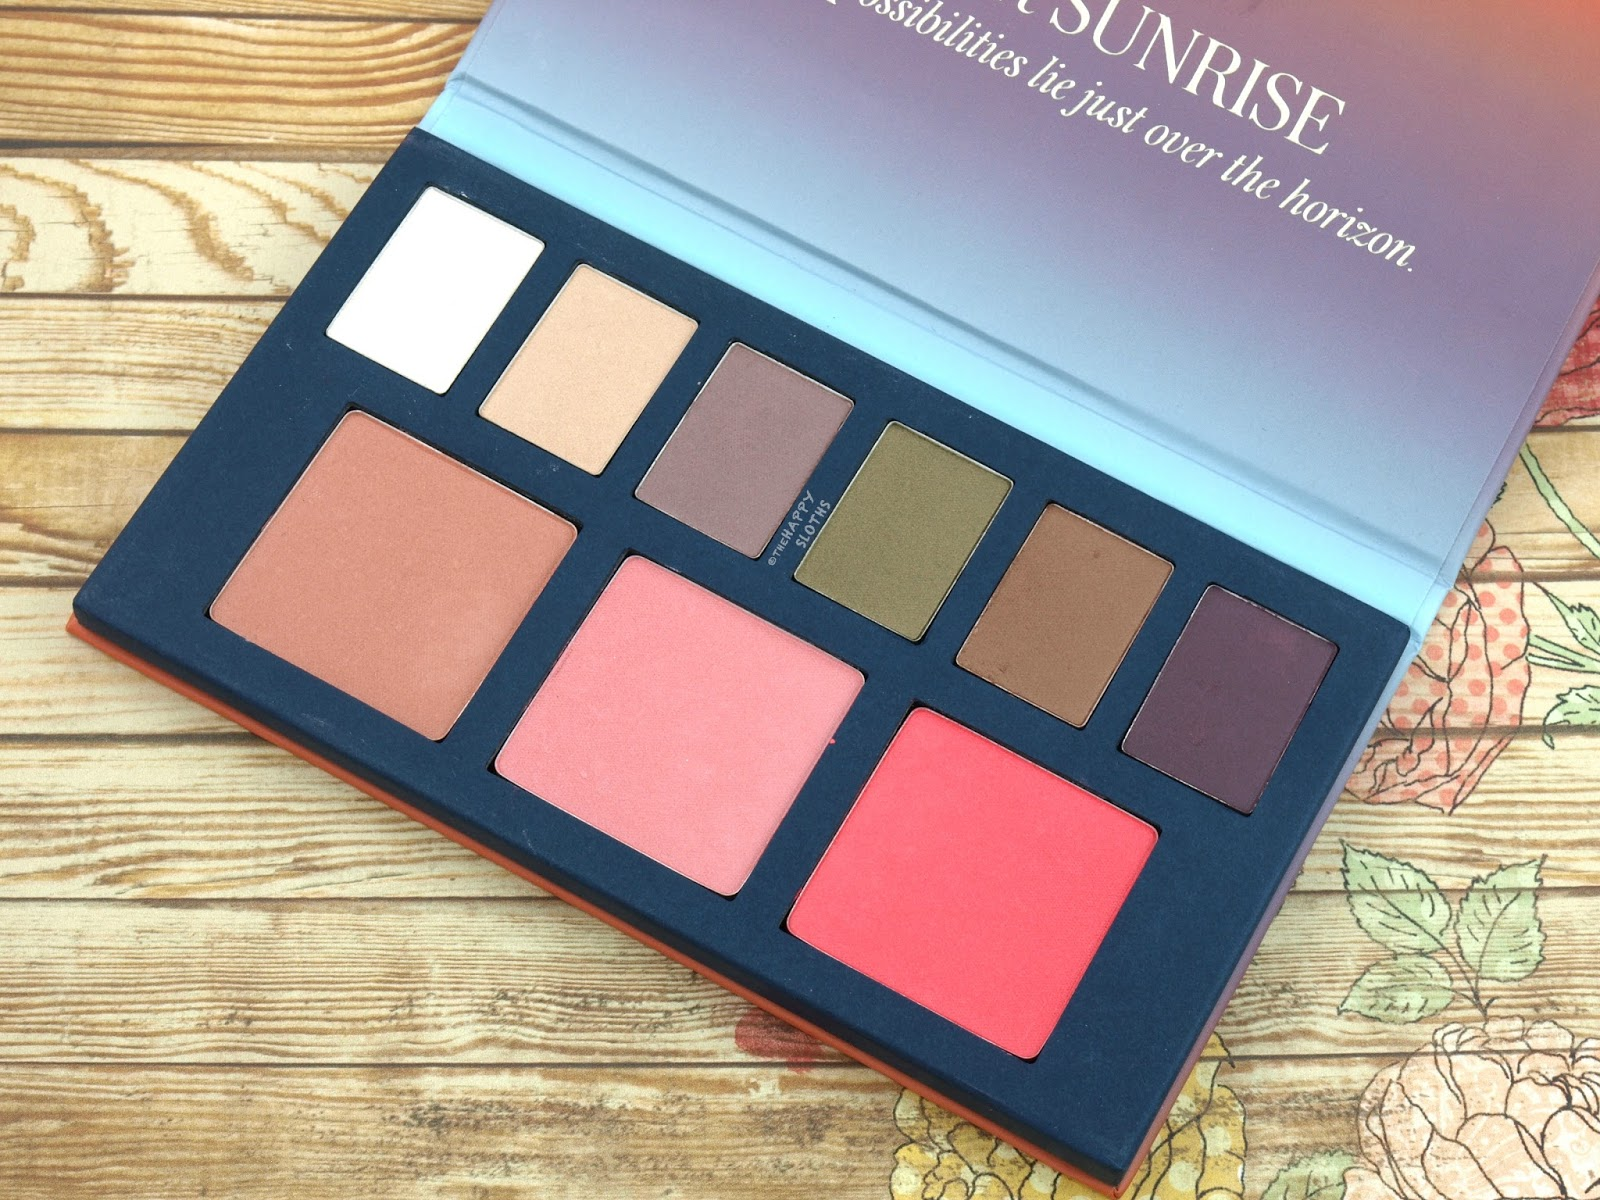 Beautycounter Desert Sunrise Palette: Review and Swatches